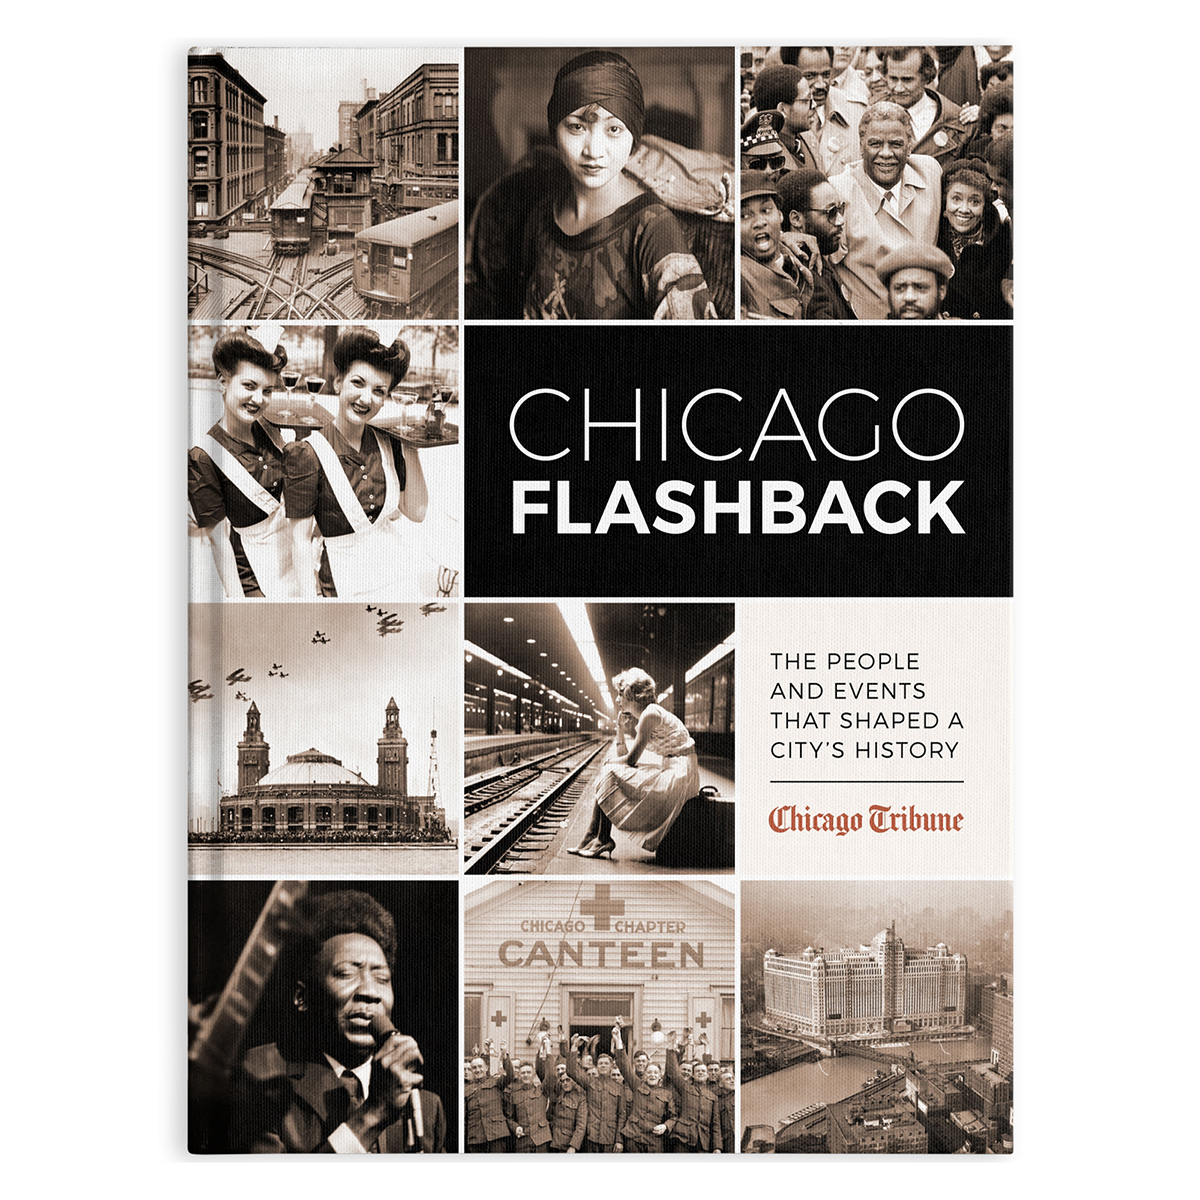 Chicago Flashback: The People and Events That Shaped a City's History